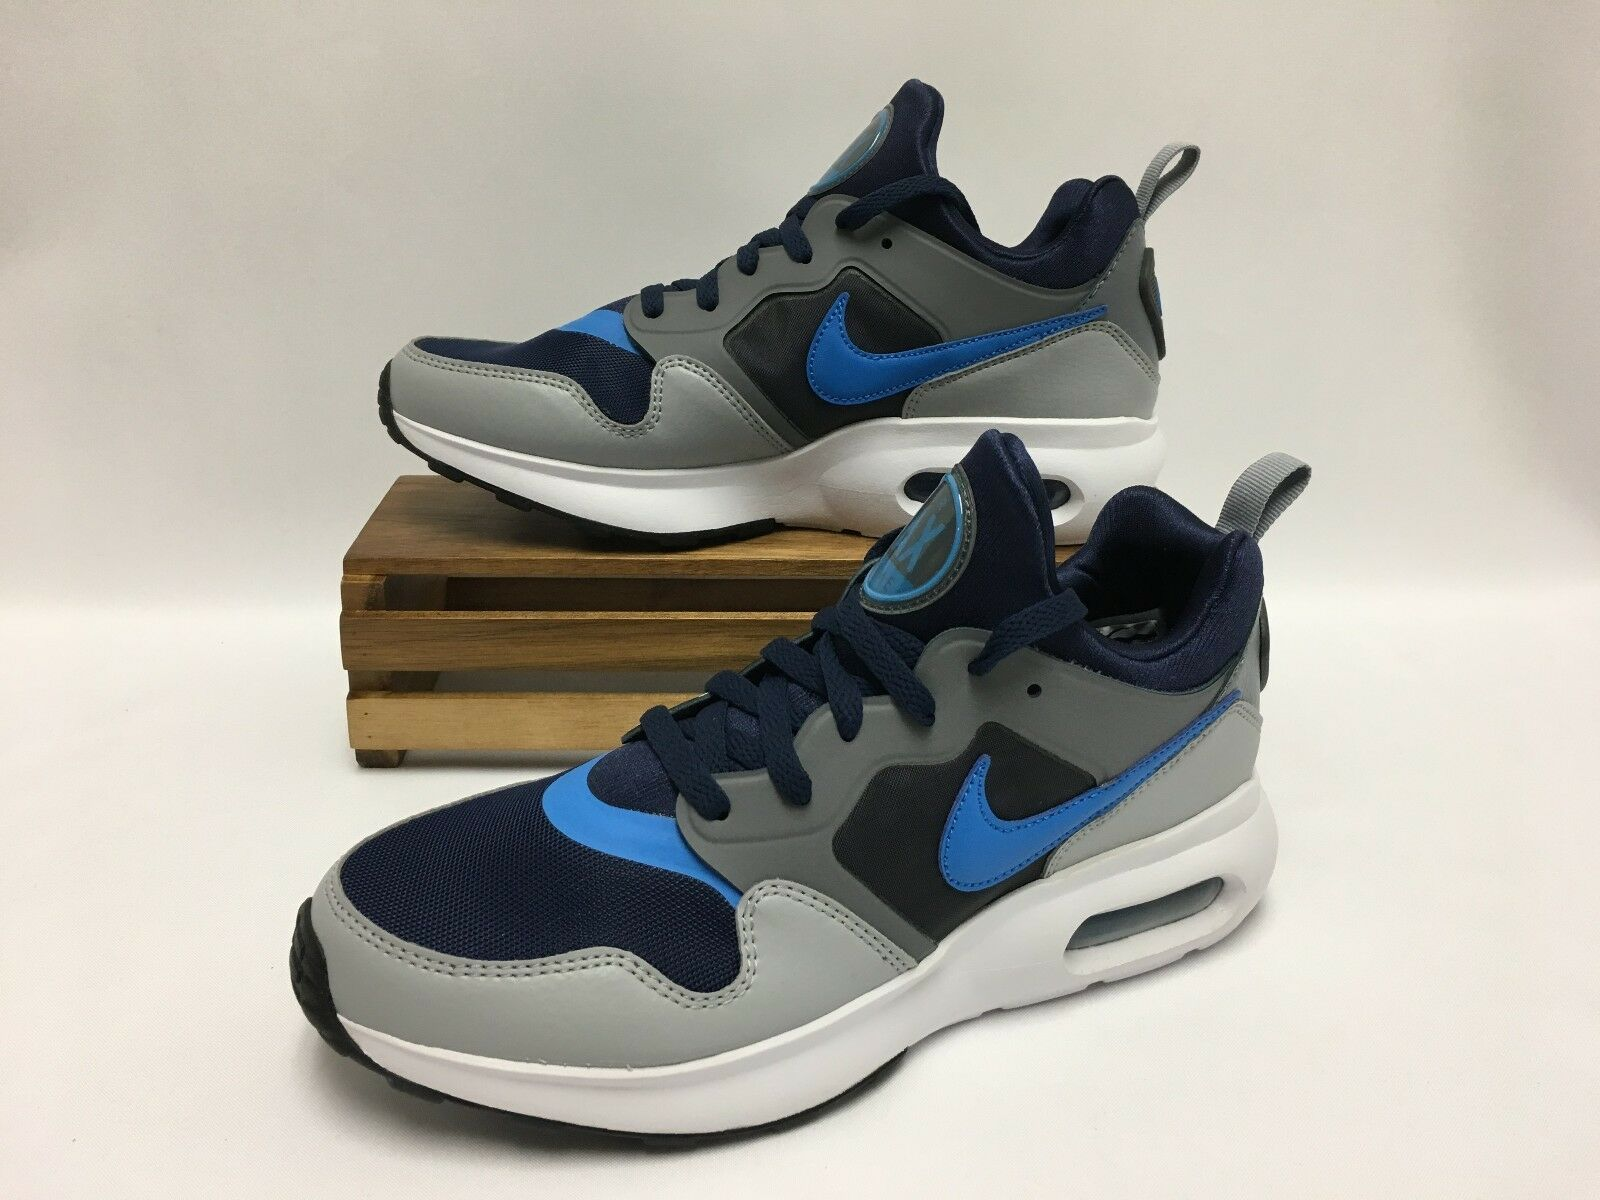 Nike Air Max Prime Shoes Binary Blue Gray White 876068-400 Men's NEW Wild casual shoes